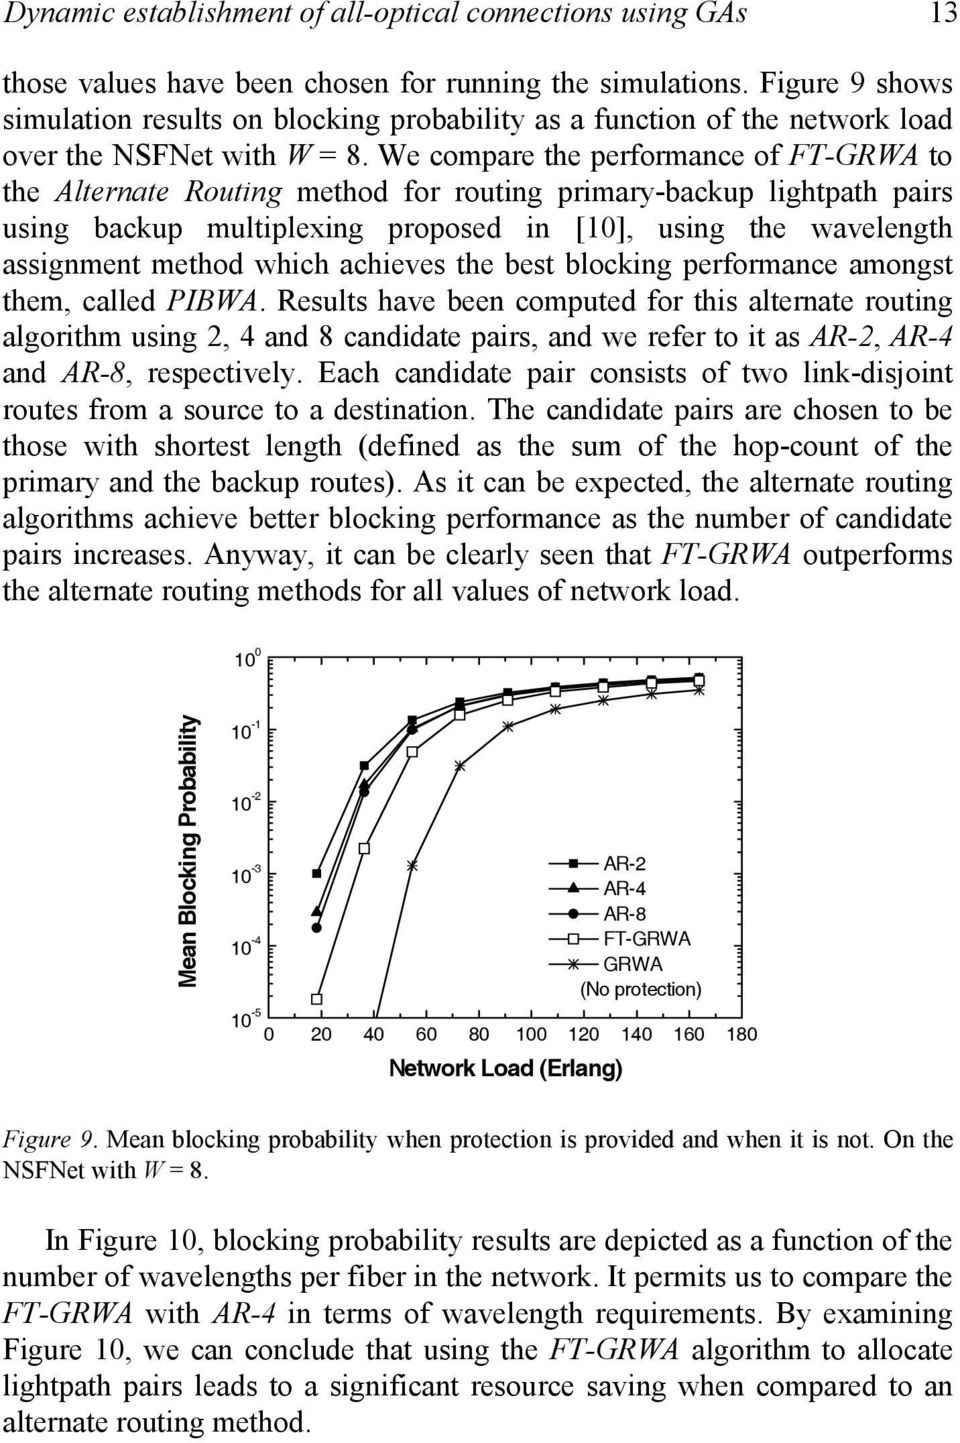 We compare the performance of FT-GRWA to the Alternate Routing method for routing primary-backup lightpath pairs using backup multiplexing proposed in [10], using the wavelength assignment method